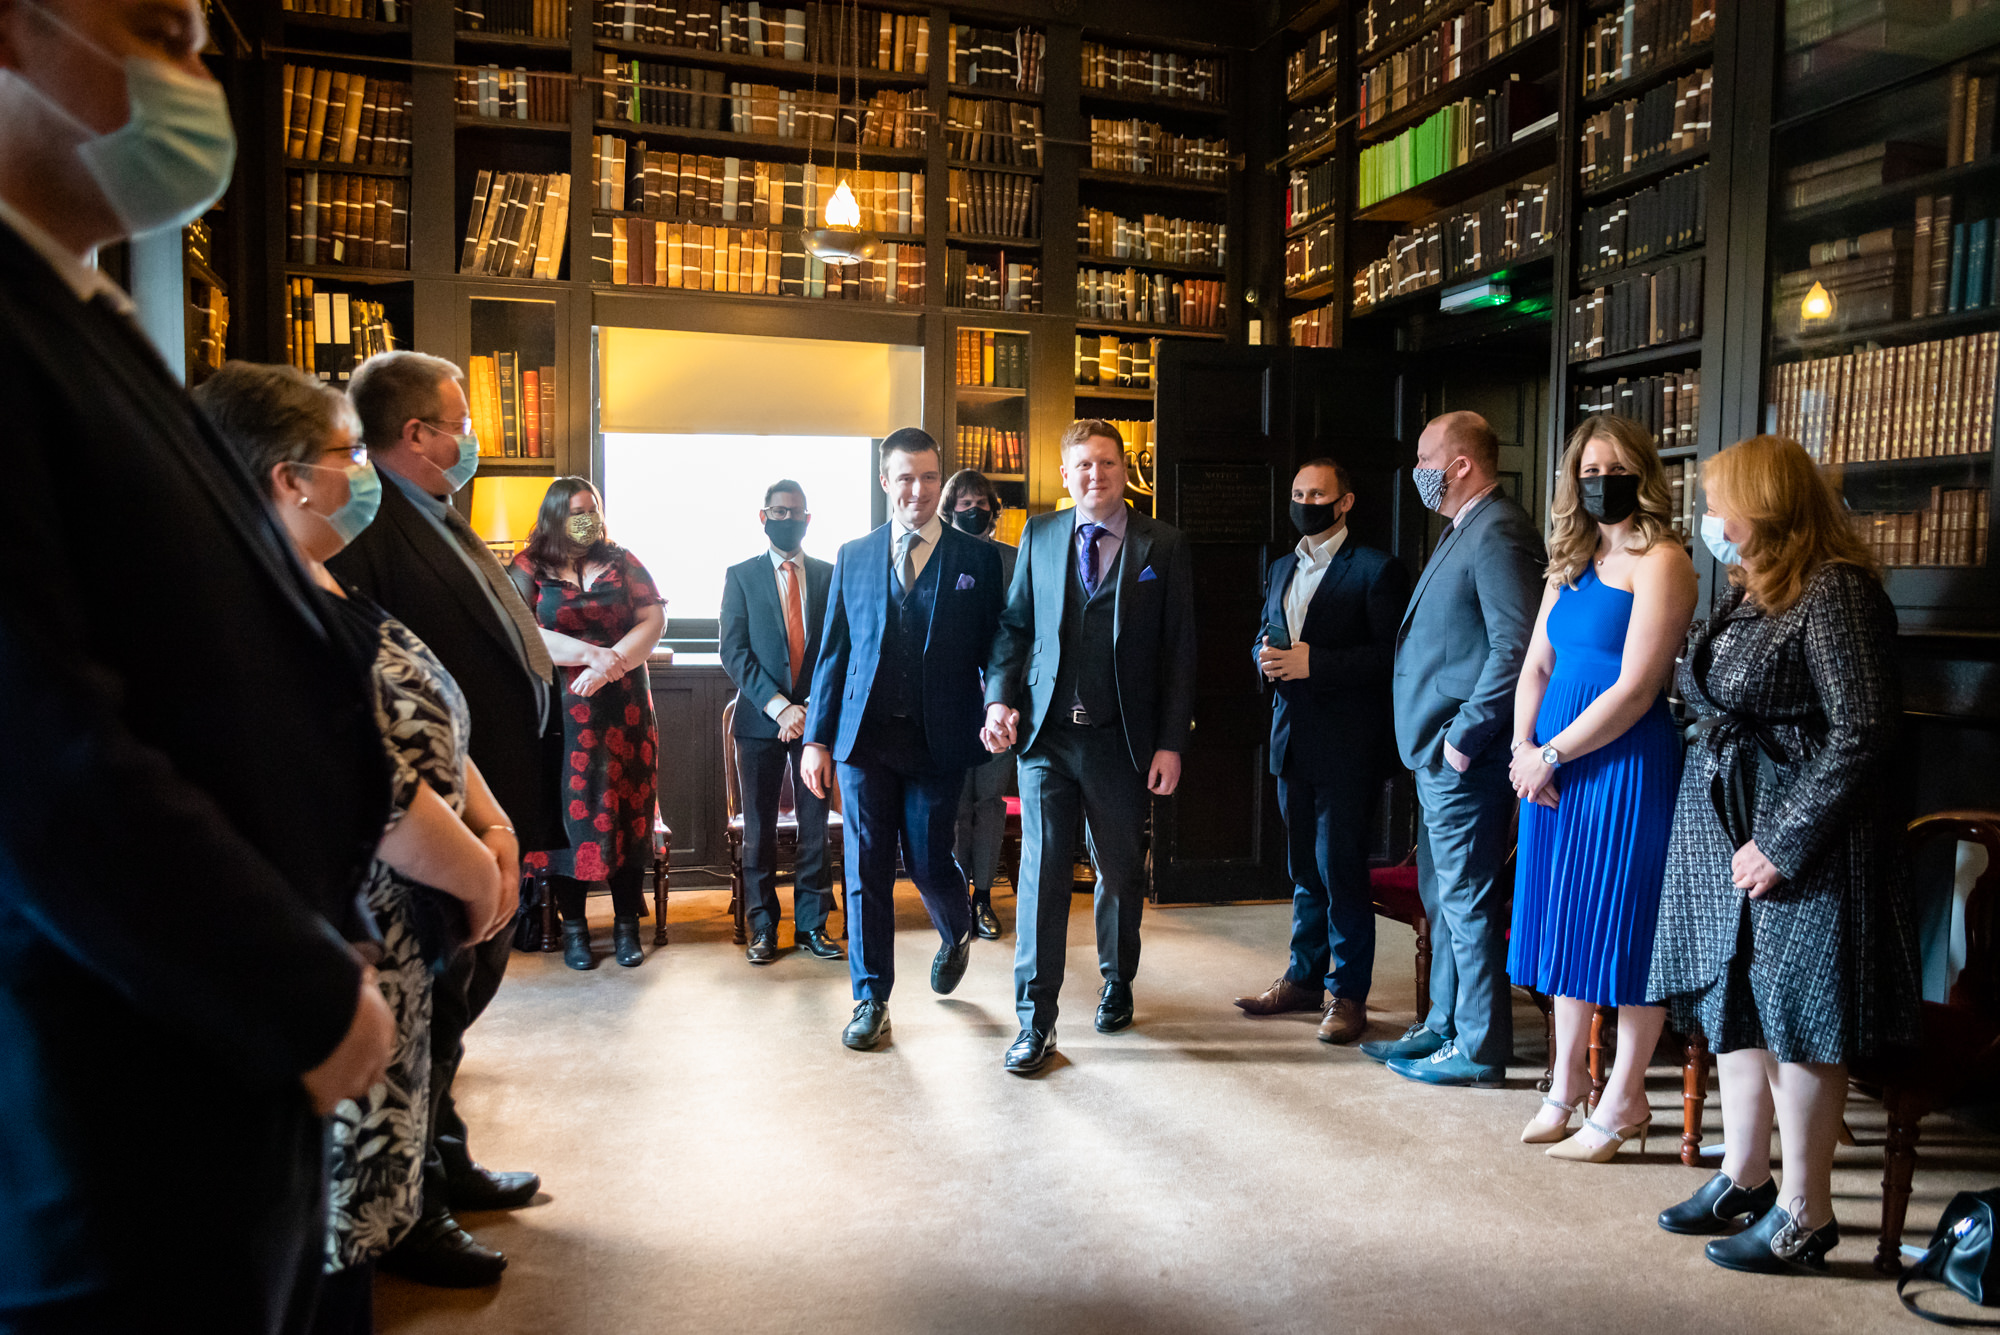 Grooms entering the reading room for their ceremony at The Portico Library